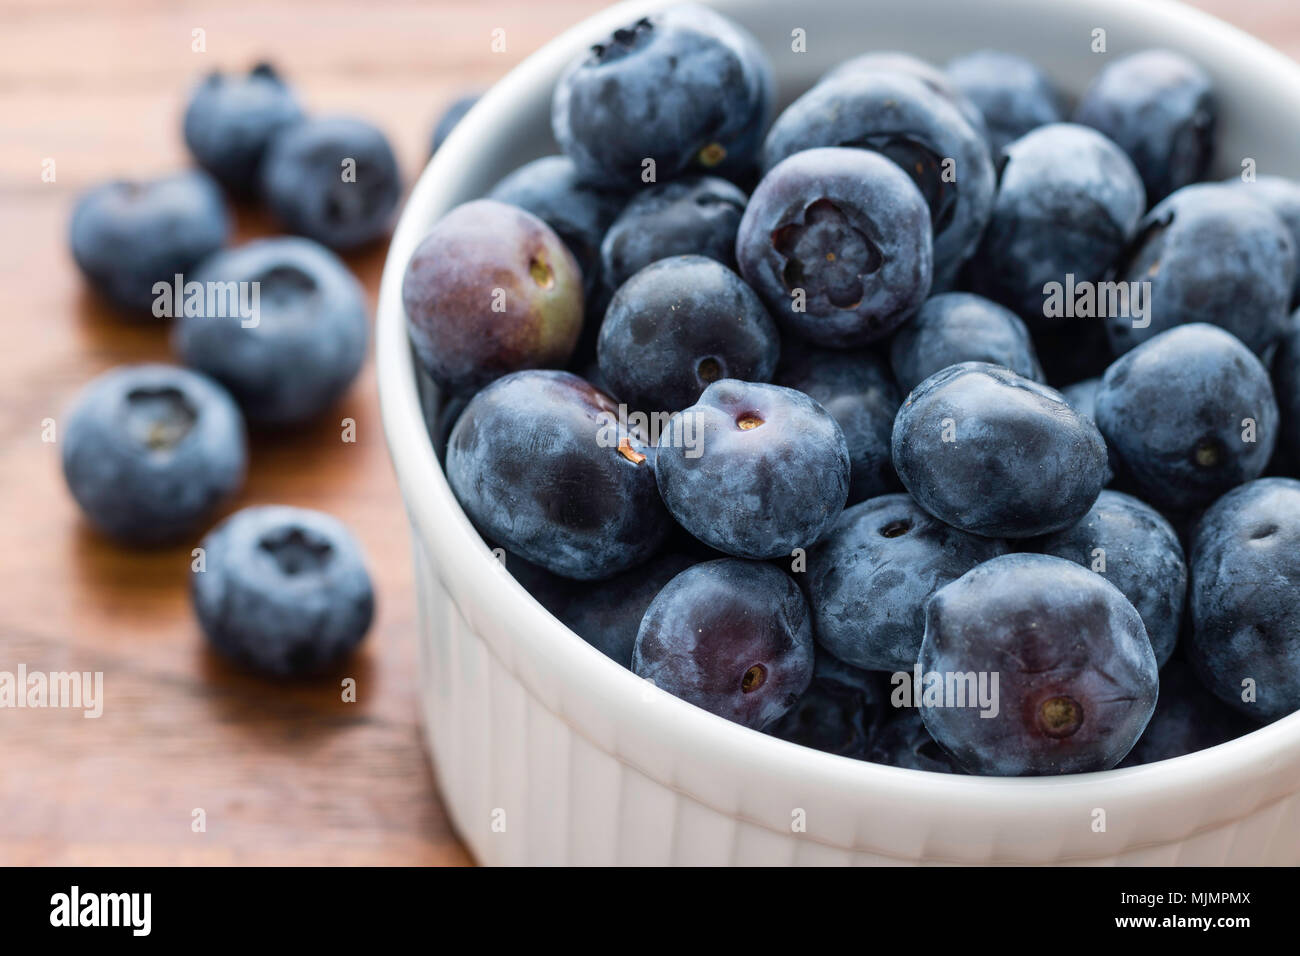 Small White Bowl filled with Fresh Blueberries, Six Blueberries on the left, Wooden Board Background, Healthy Eating Concept - Stock Image